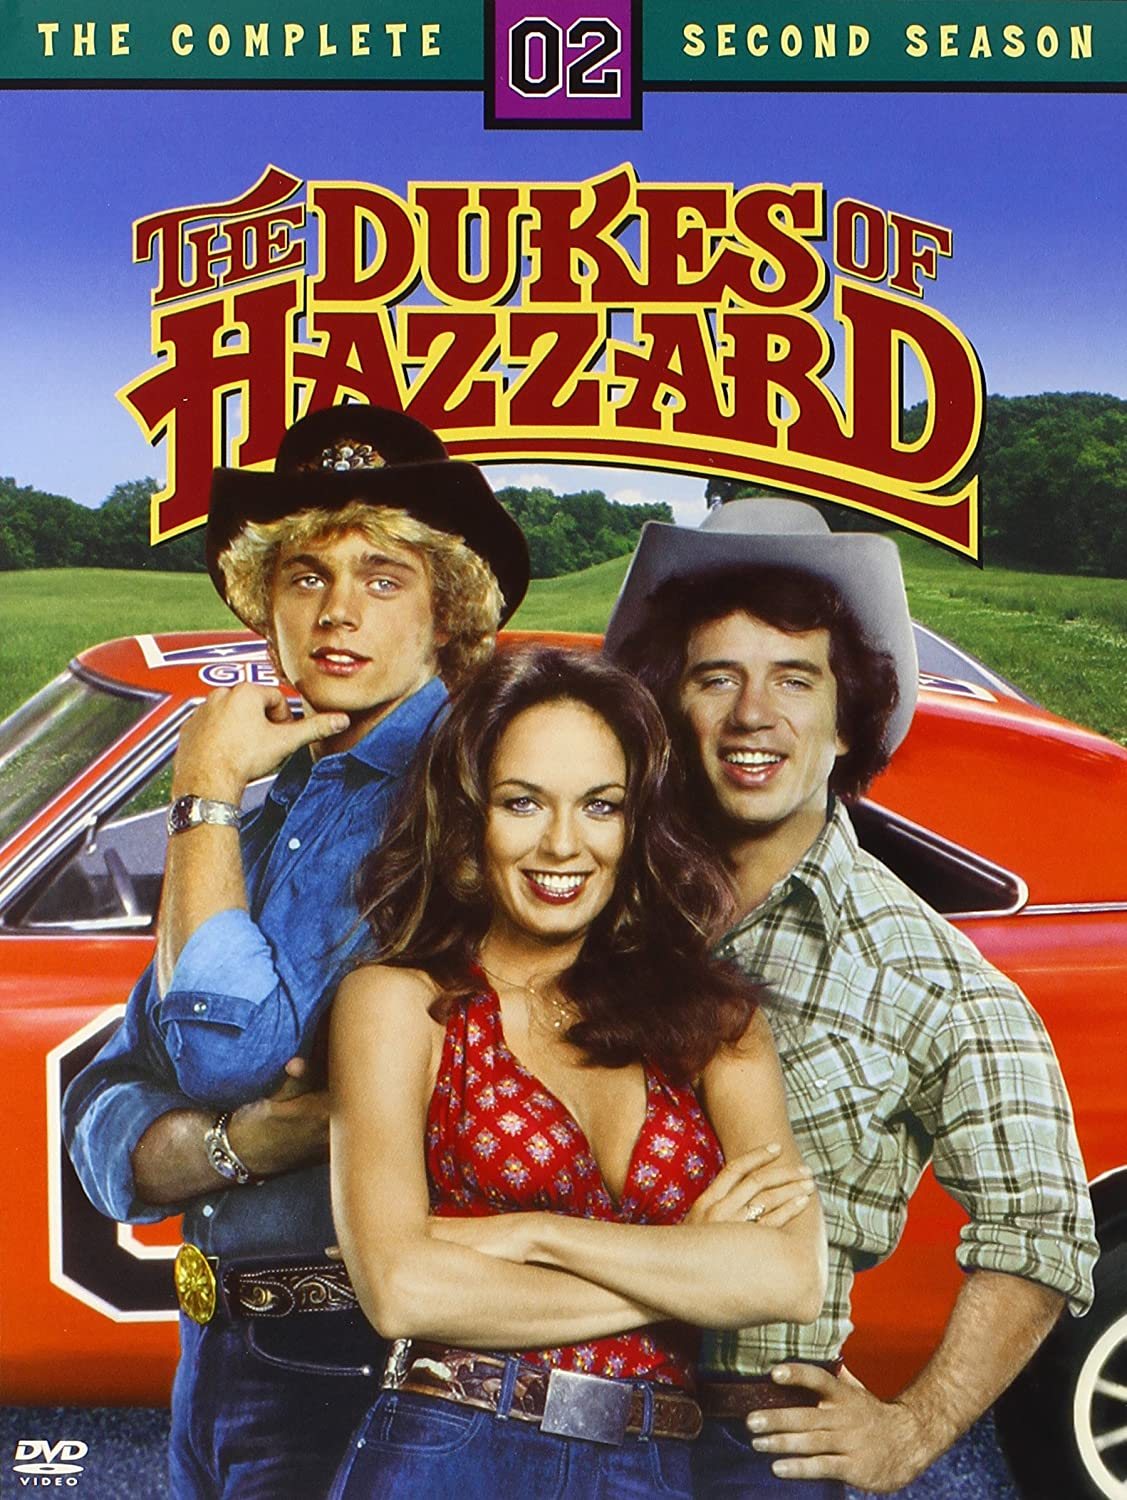 Dukes of Hazzard: Complete Second Season Reino Unido DVD: Amazon.es: Cine y Series TV